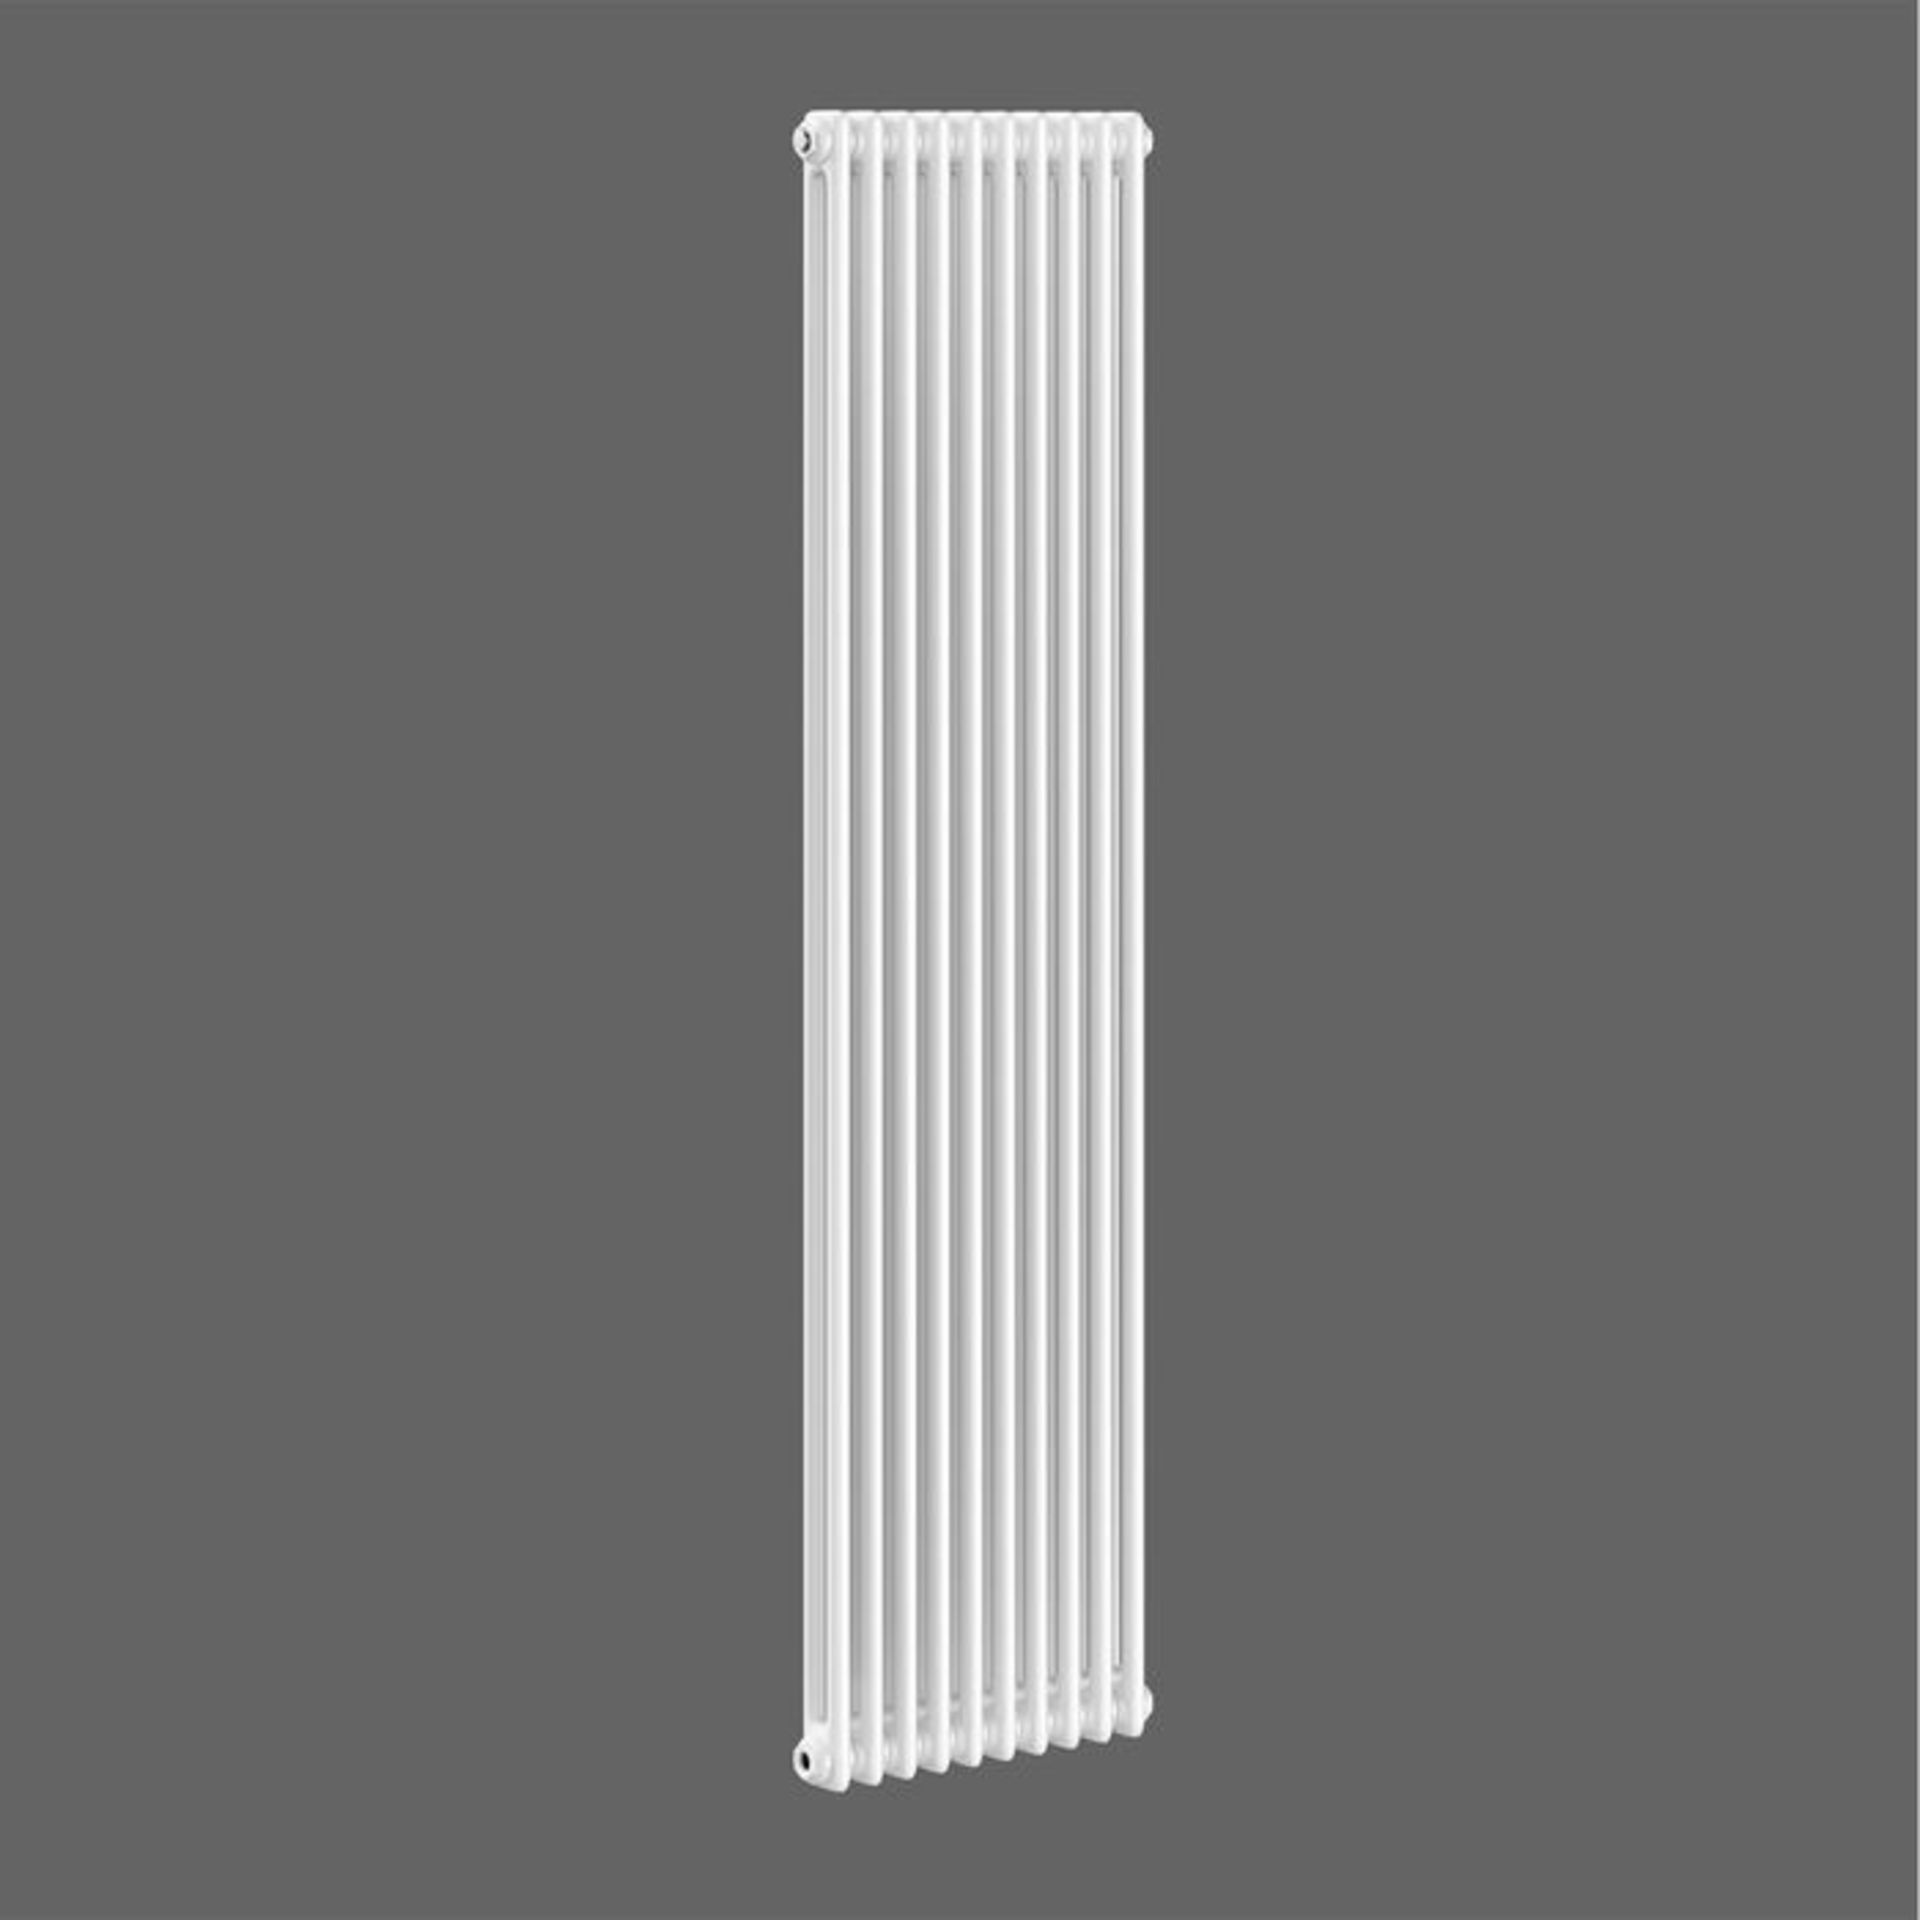 Lot 29 - (XX19) 2000x490mm White Double Panel Vertical Colosseum Traditional Radiator. RRP £488.99. For...